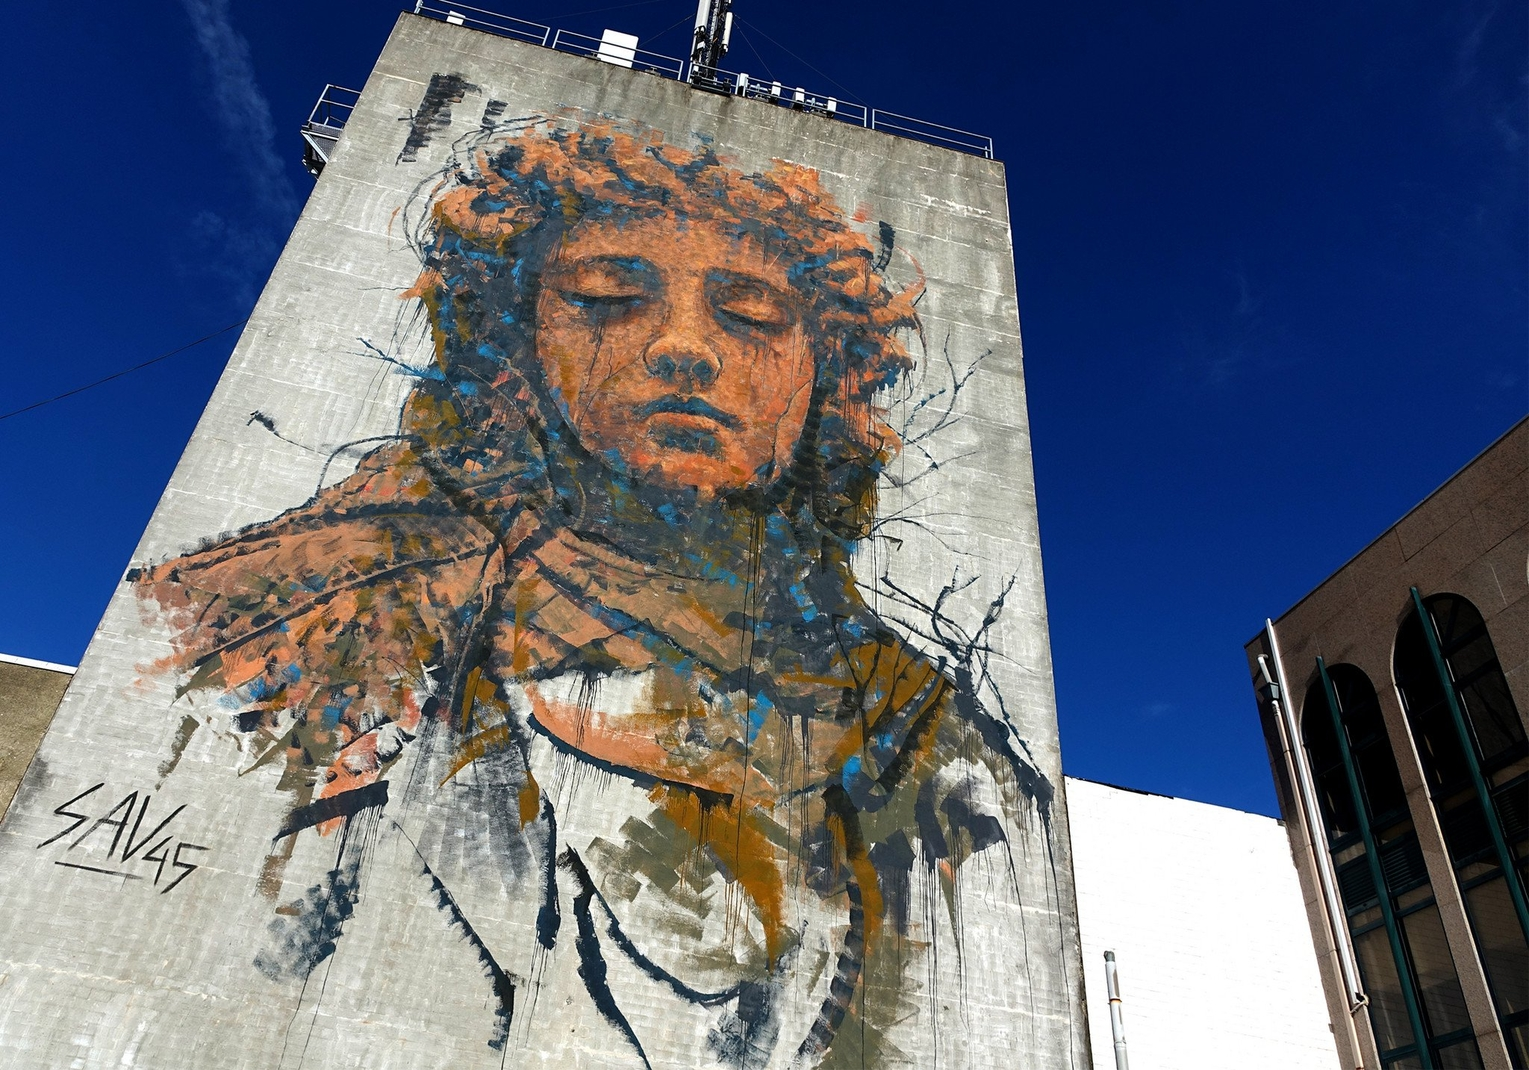 Family Outing: Celebrating Urban Art on the Streets of Agueda